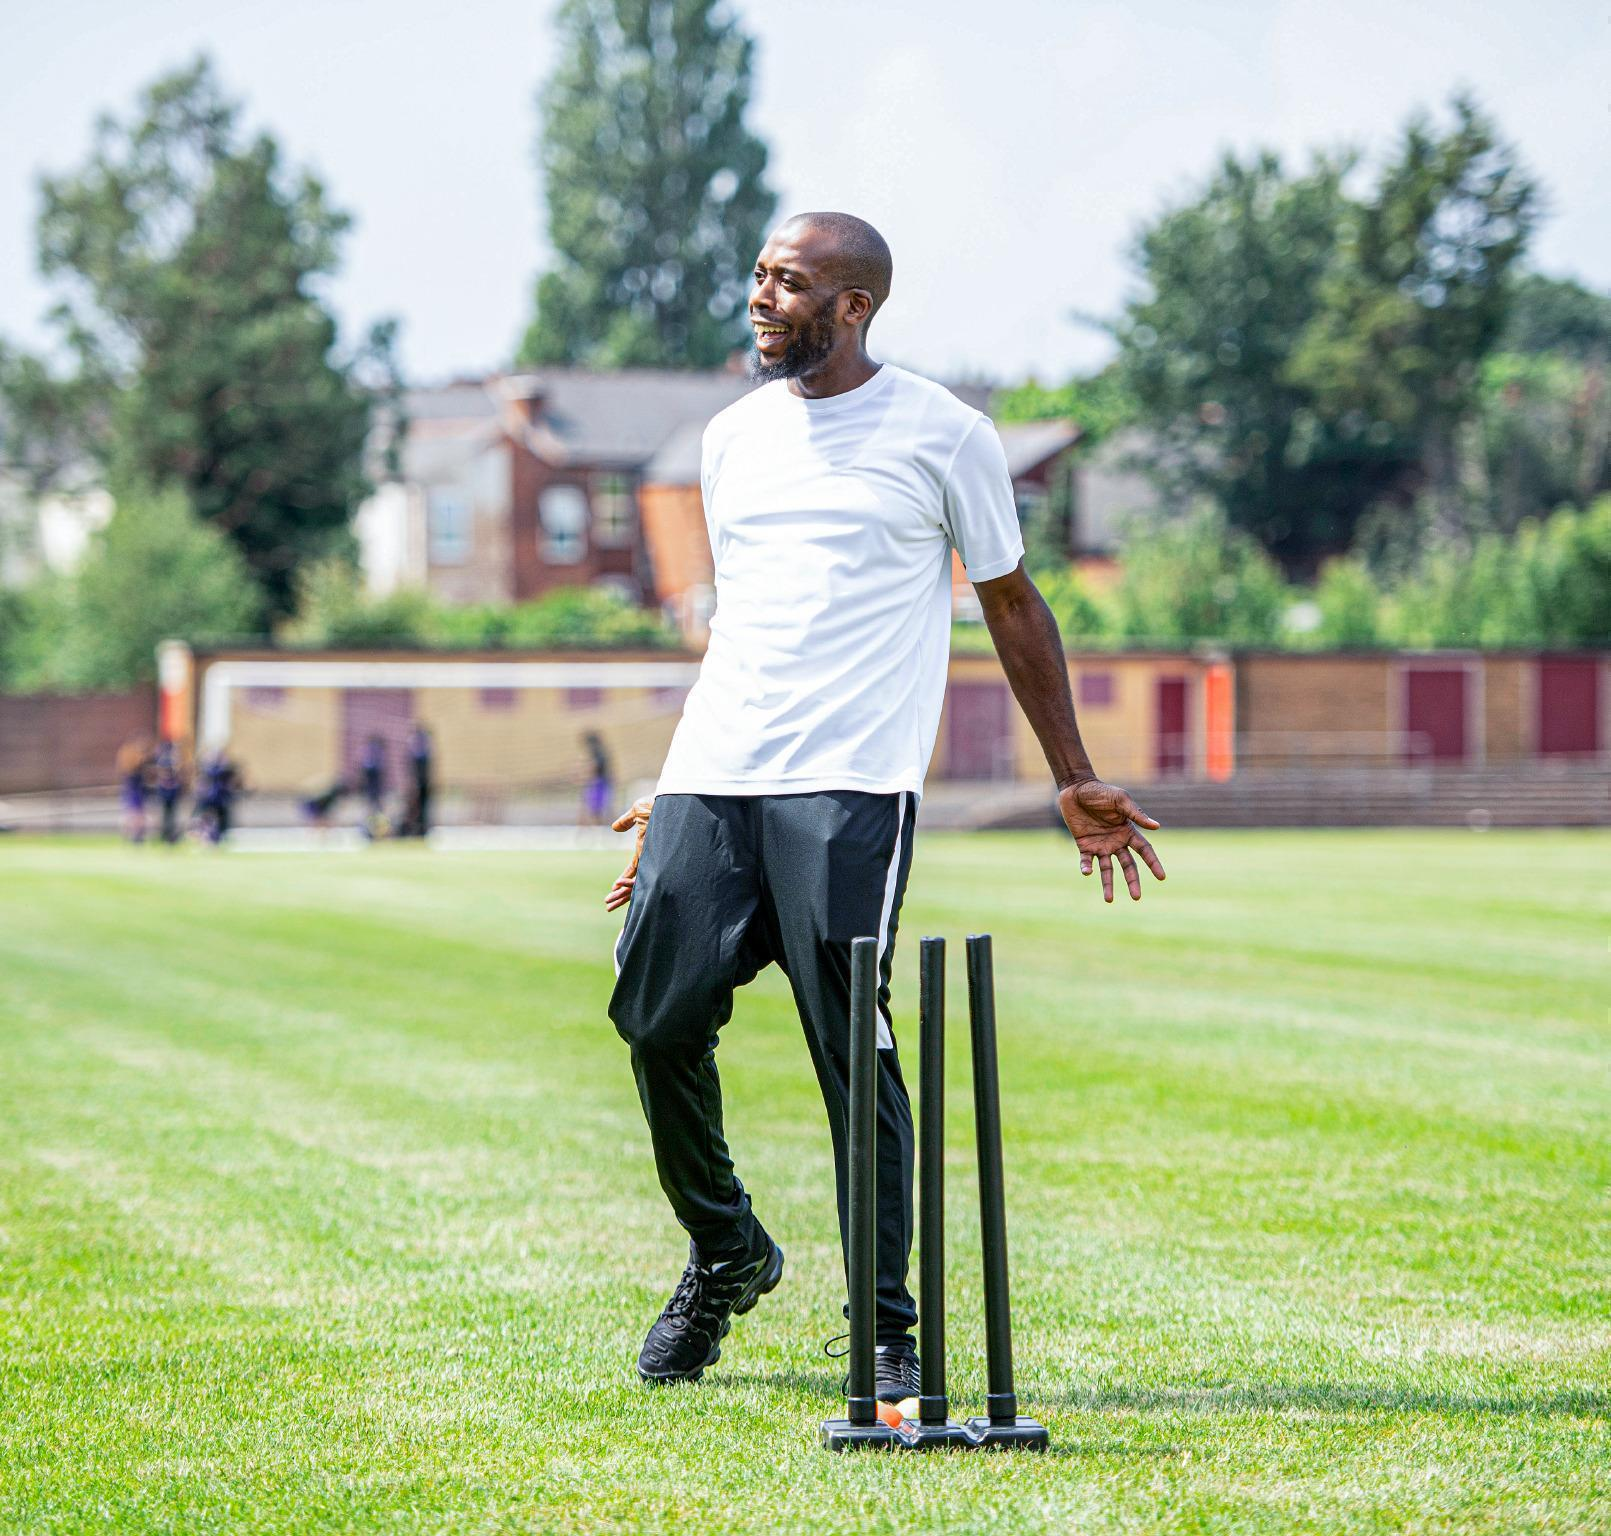 The Movers List: How Tanayah Sam is using cricket to help others learn from his mistakes